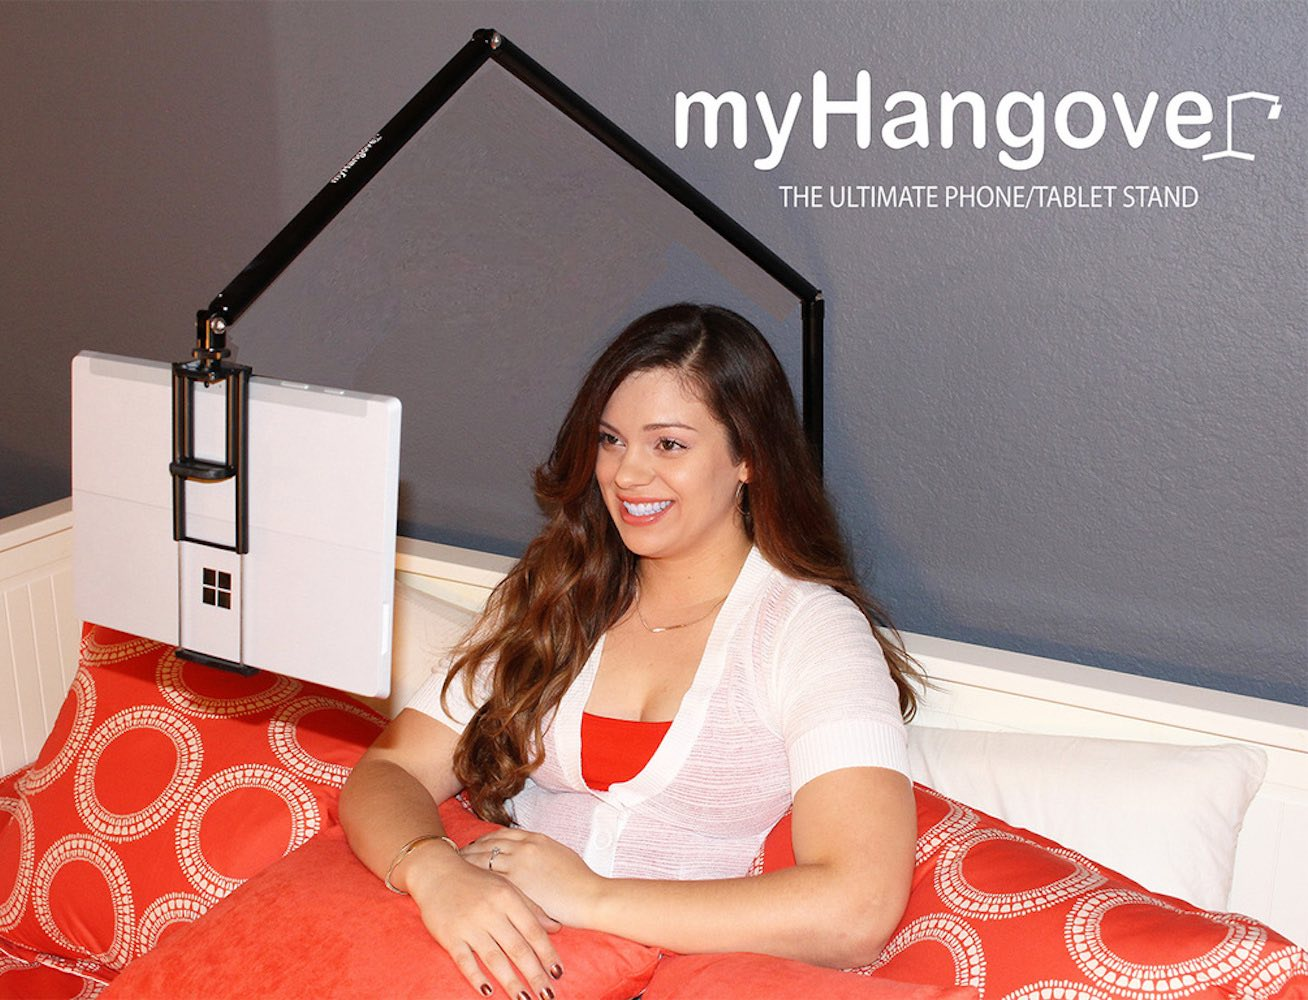 myHangover – The Ultimate Phone/Tablet Stand